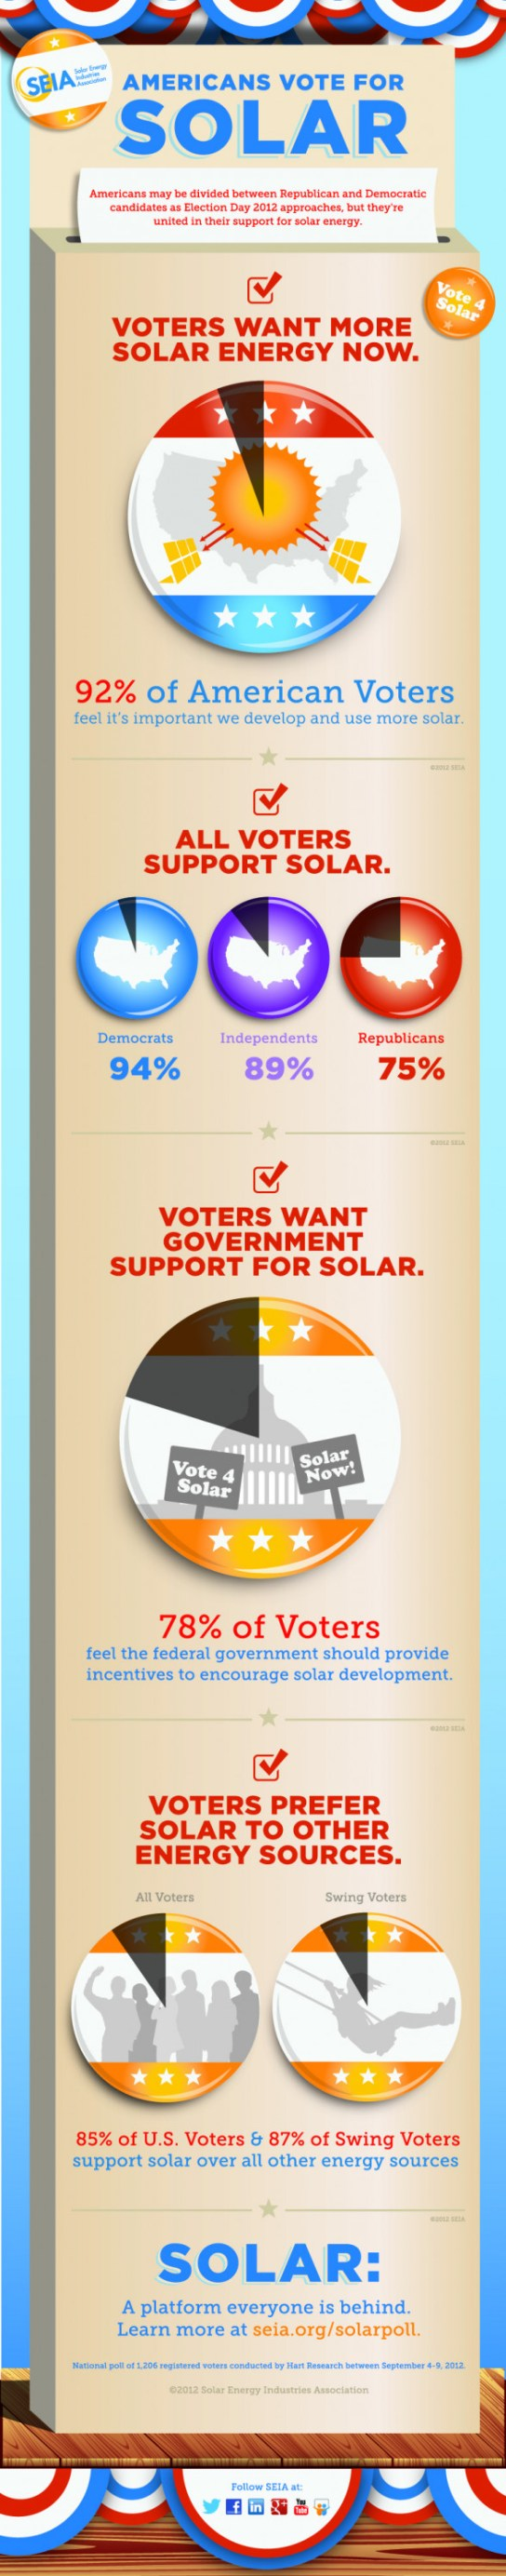 Americans Vote for Solar